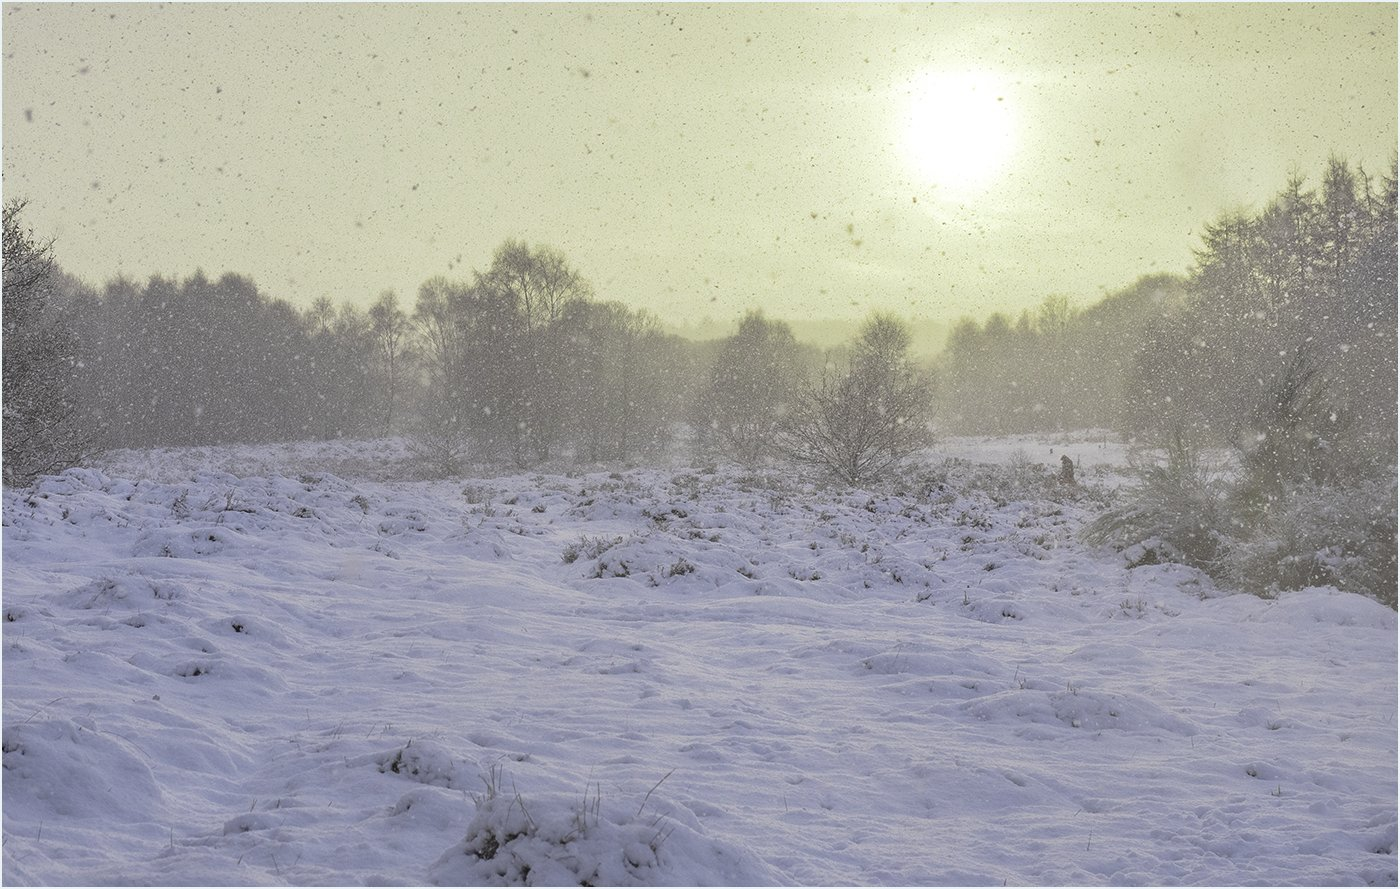 Commended: Sun and Snow (Peter Mullen)